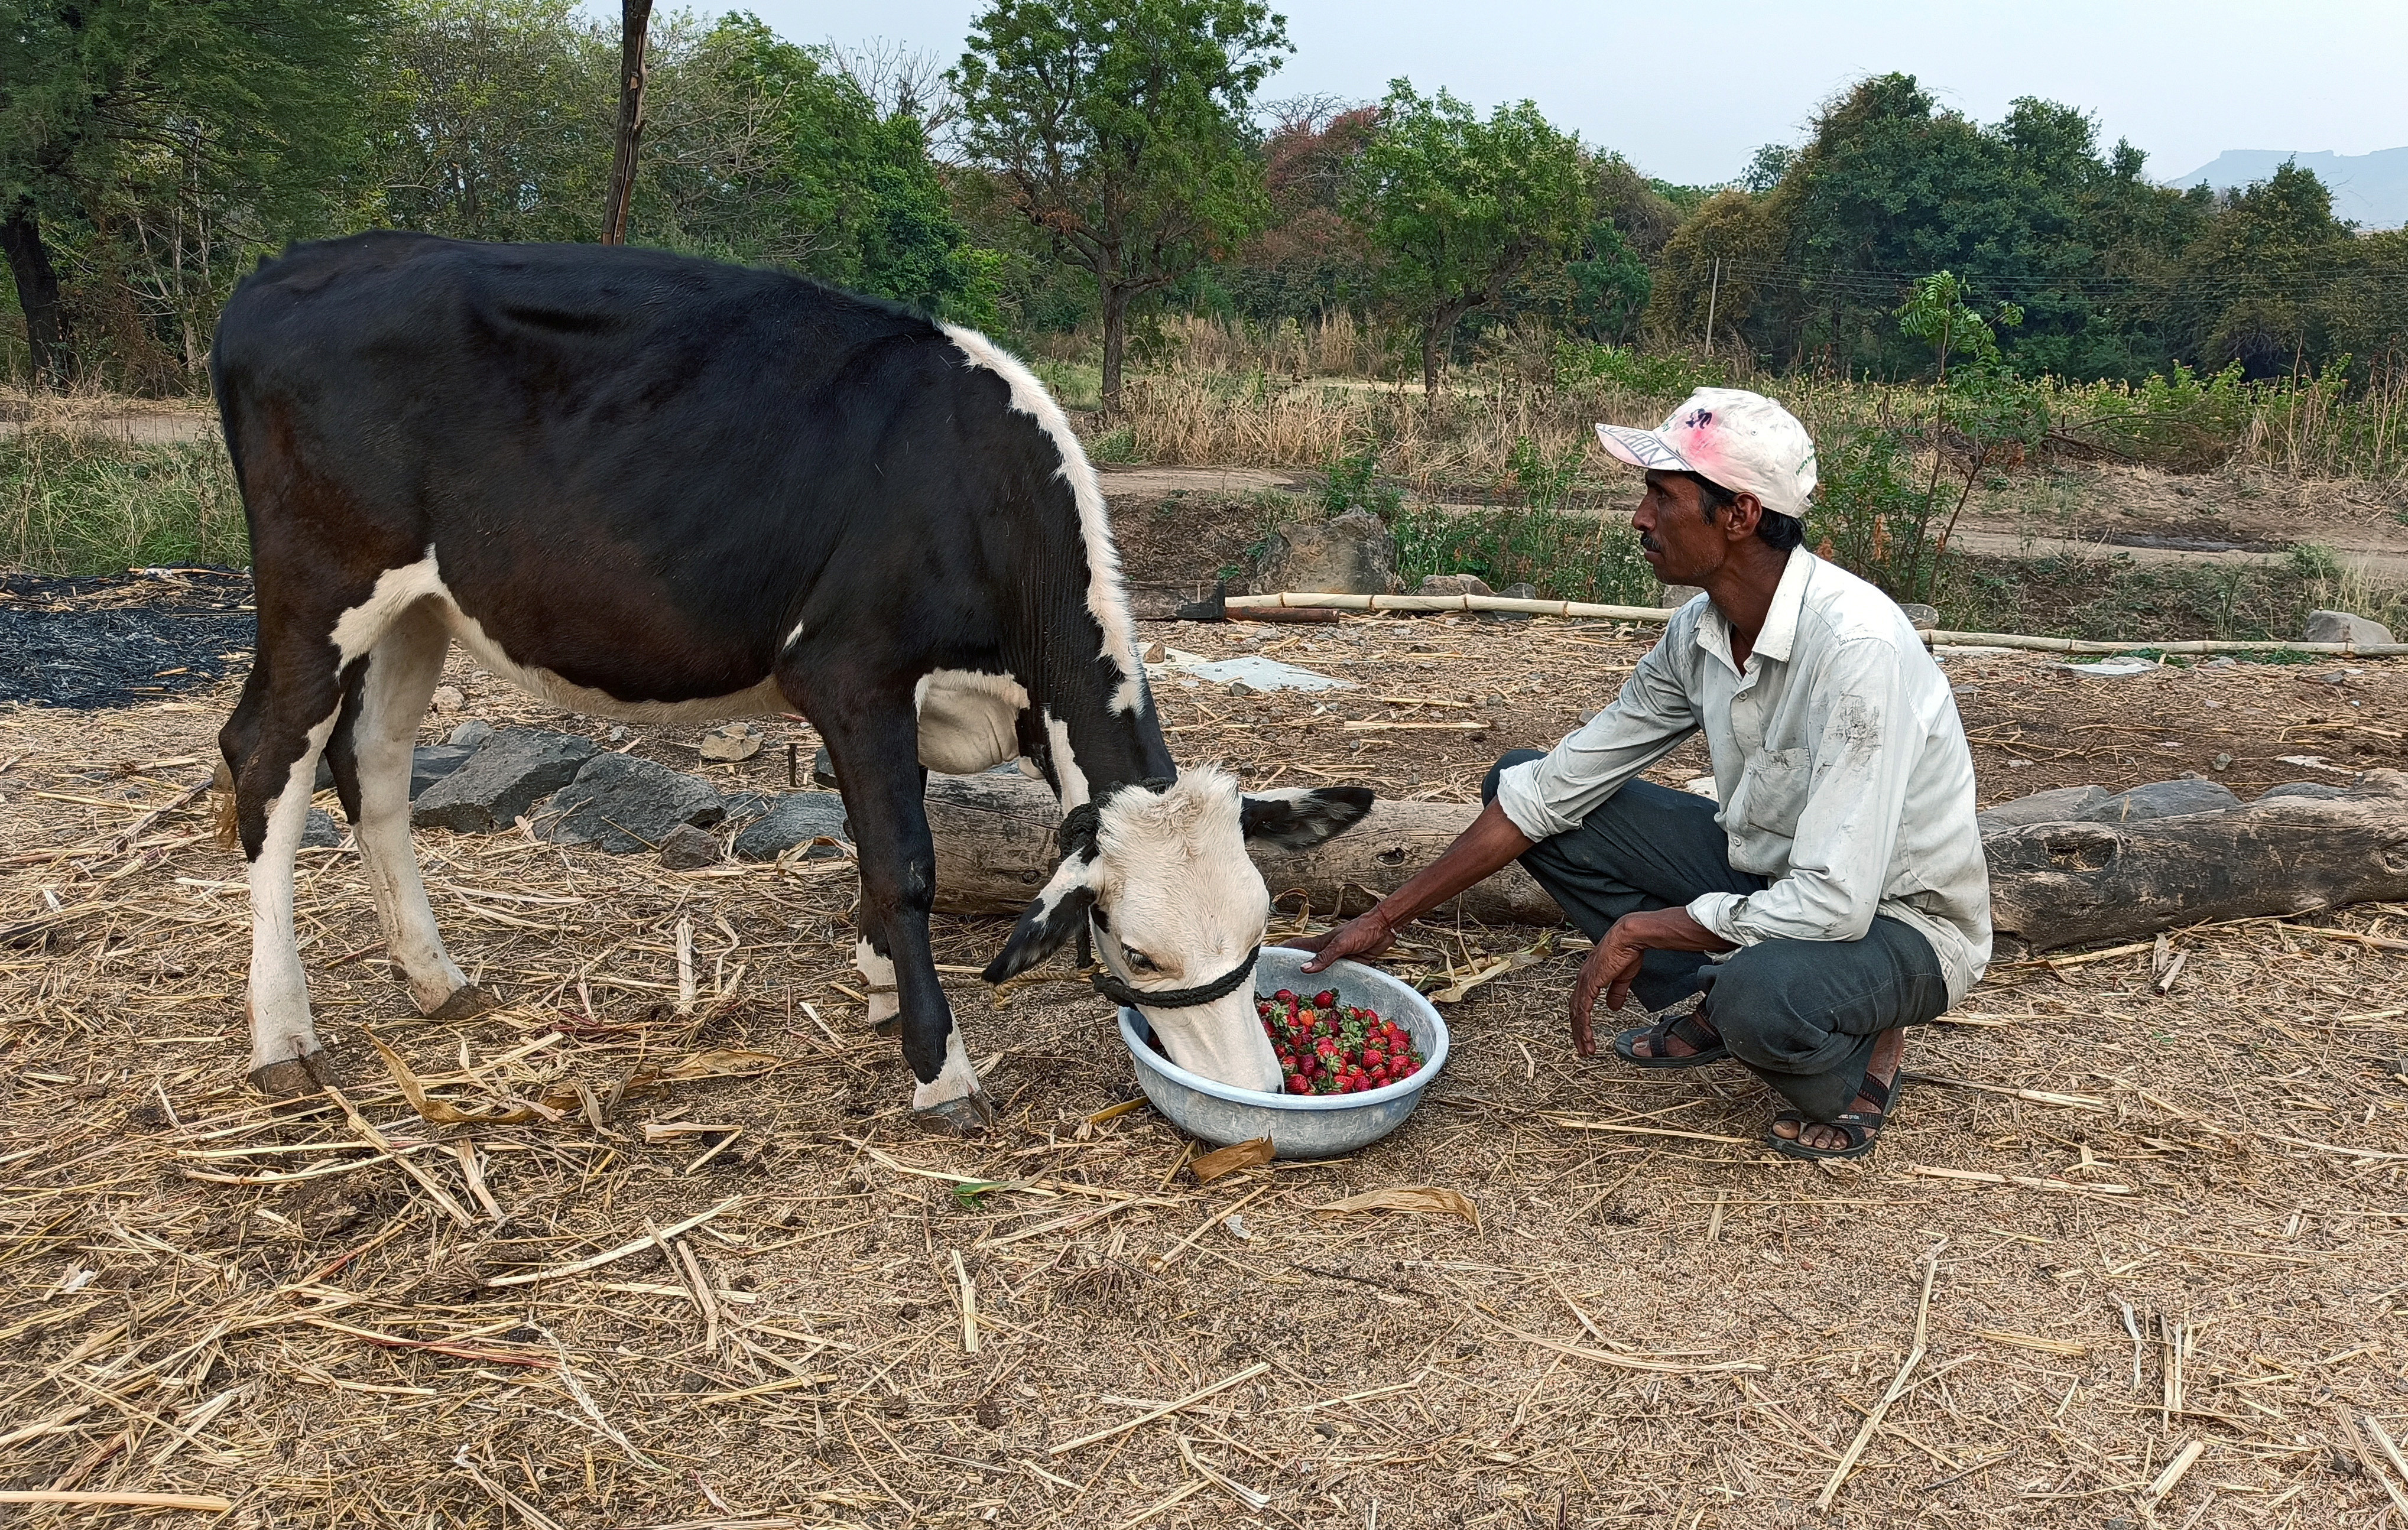 Anil Salunkhe, a farmer, feeds strawberries to his cow during a 21-day nationwide lockdown to slow the spreading of coronavirus disease (COVID-19), at Darewadi village in Satara district in the western state of Maharashtra, India, April 1, 2020. Picture taken April 1, 2020. REUTERS/Rajendra Jadhav - RC27WF9TA6EW